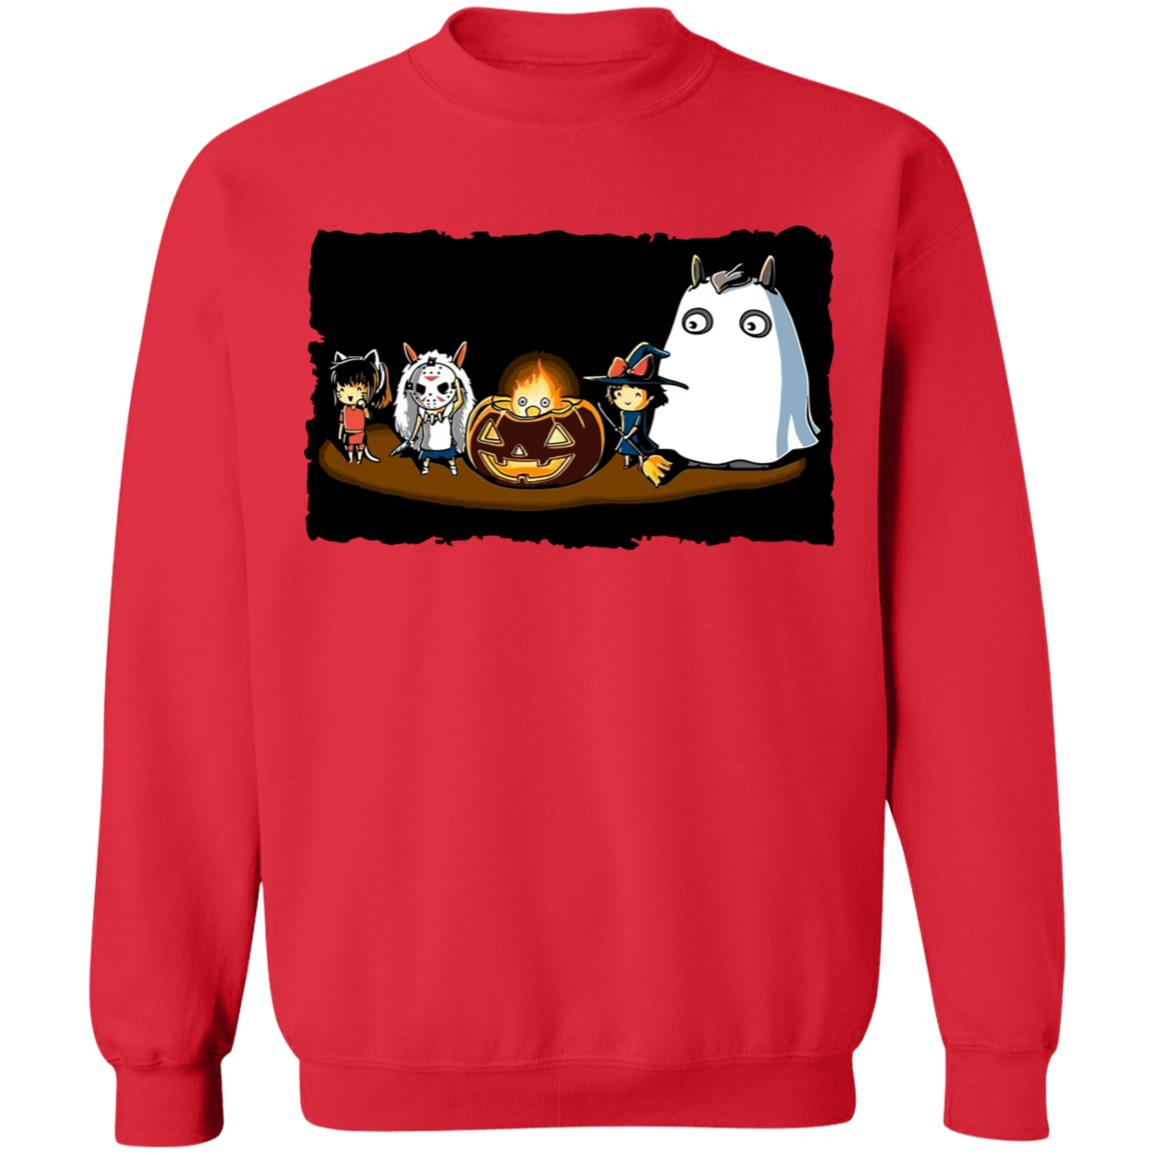 Ghibli Studio – Halloween Funny Party Sweatshirt Unisex